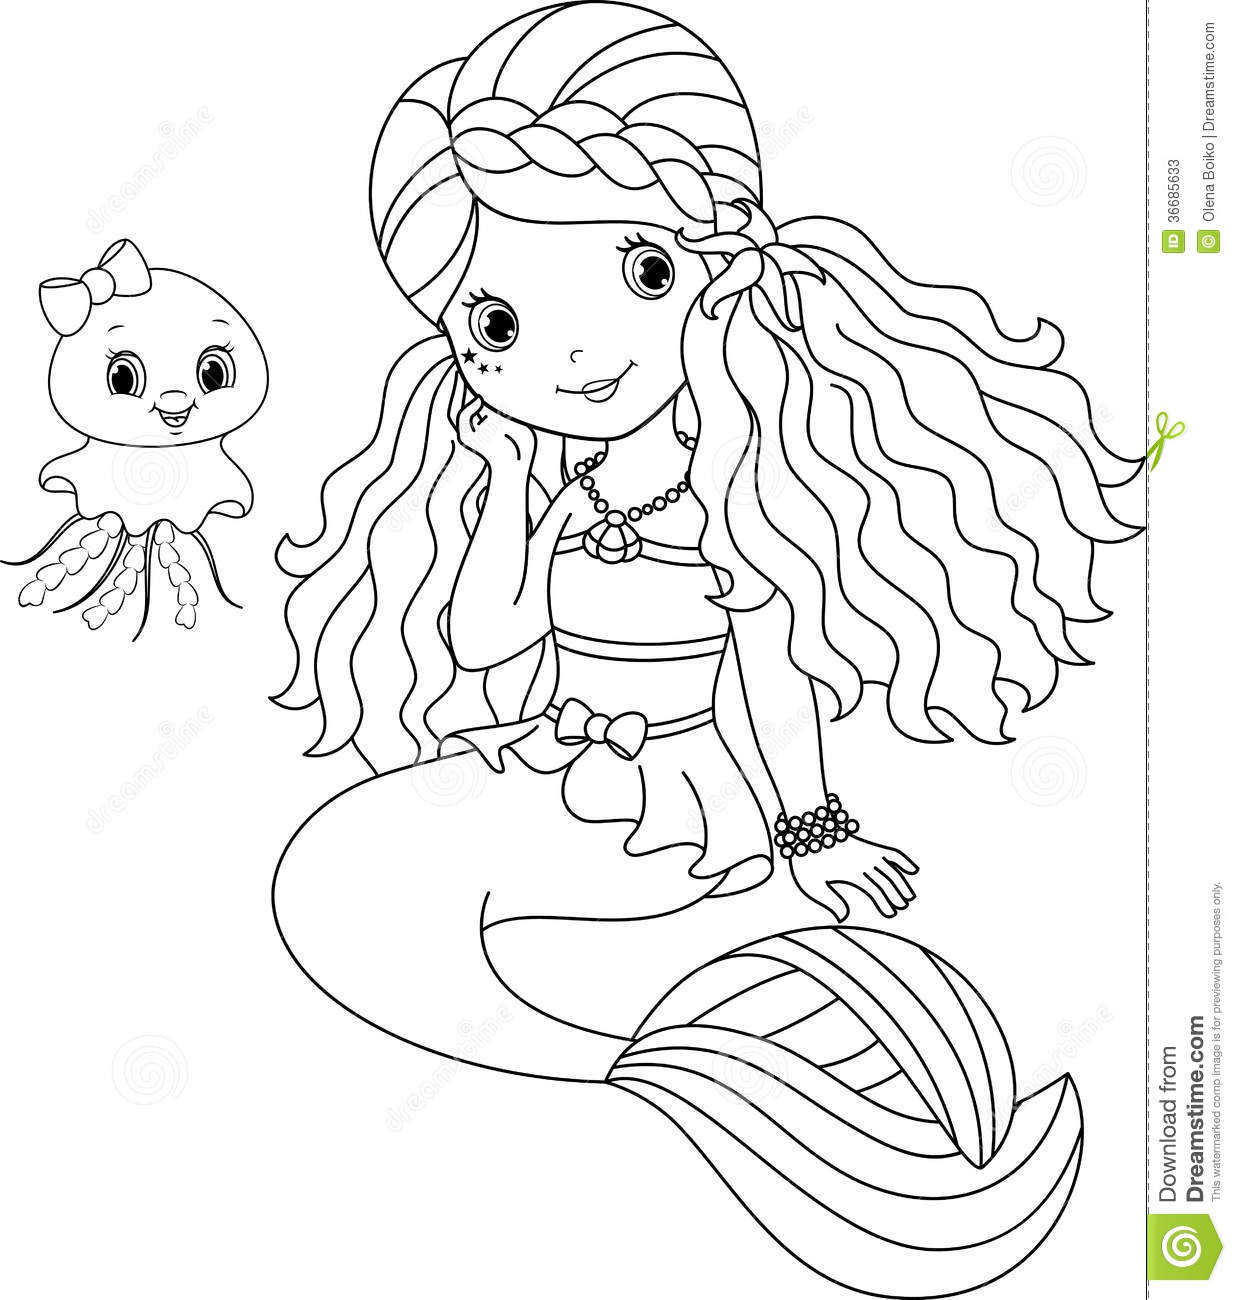 hello kitty mermaid coloring page hello kitty mermaid birthday printable coloring pages gt mermaid gt mermaid coloring pages 5337 baby mermaid coloring